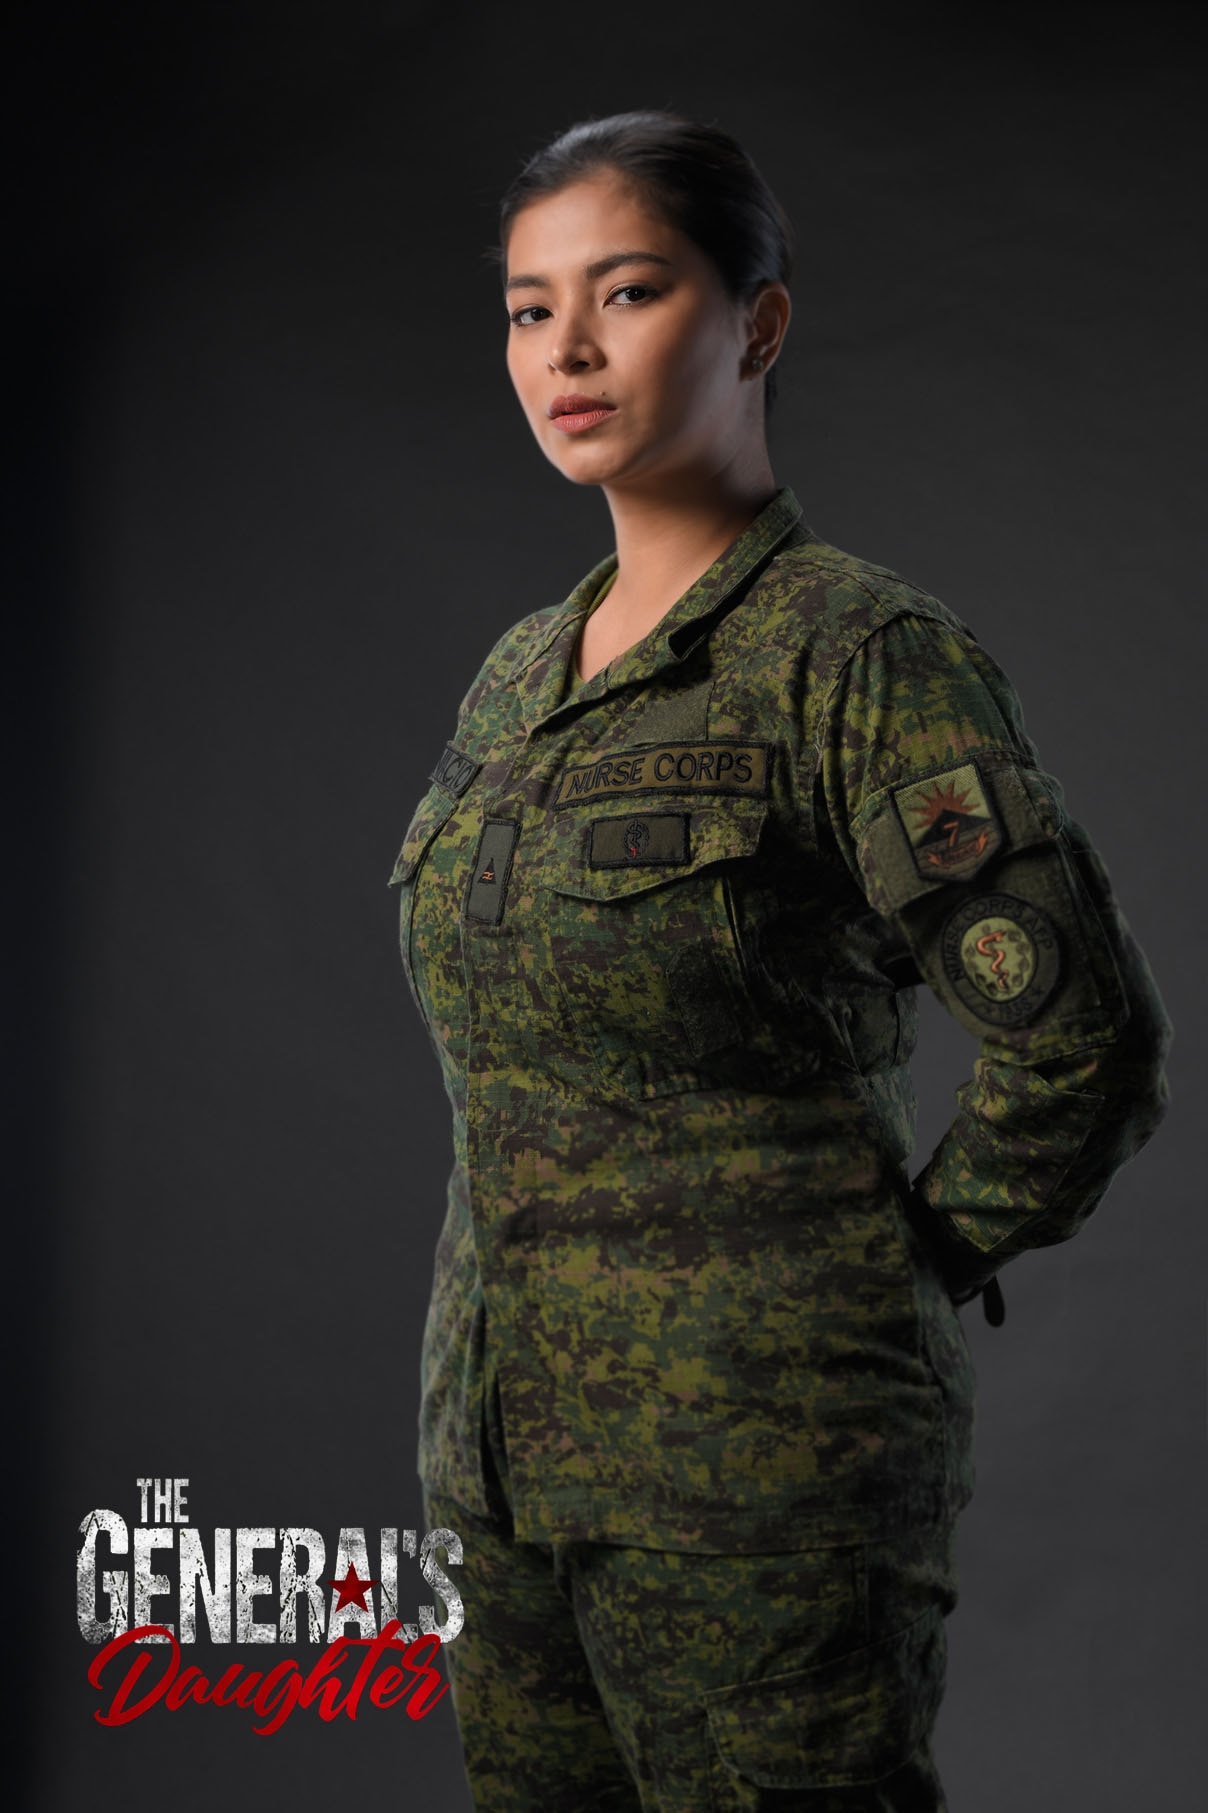 Angel Locsin is The General s Daughter